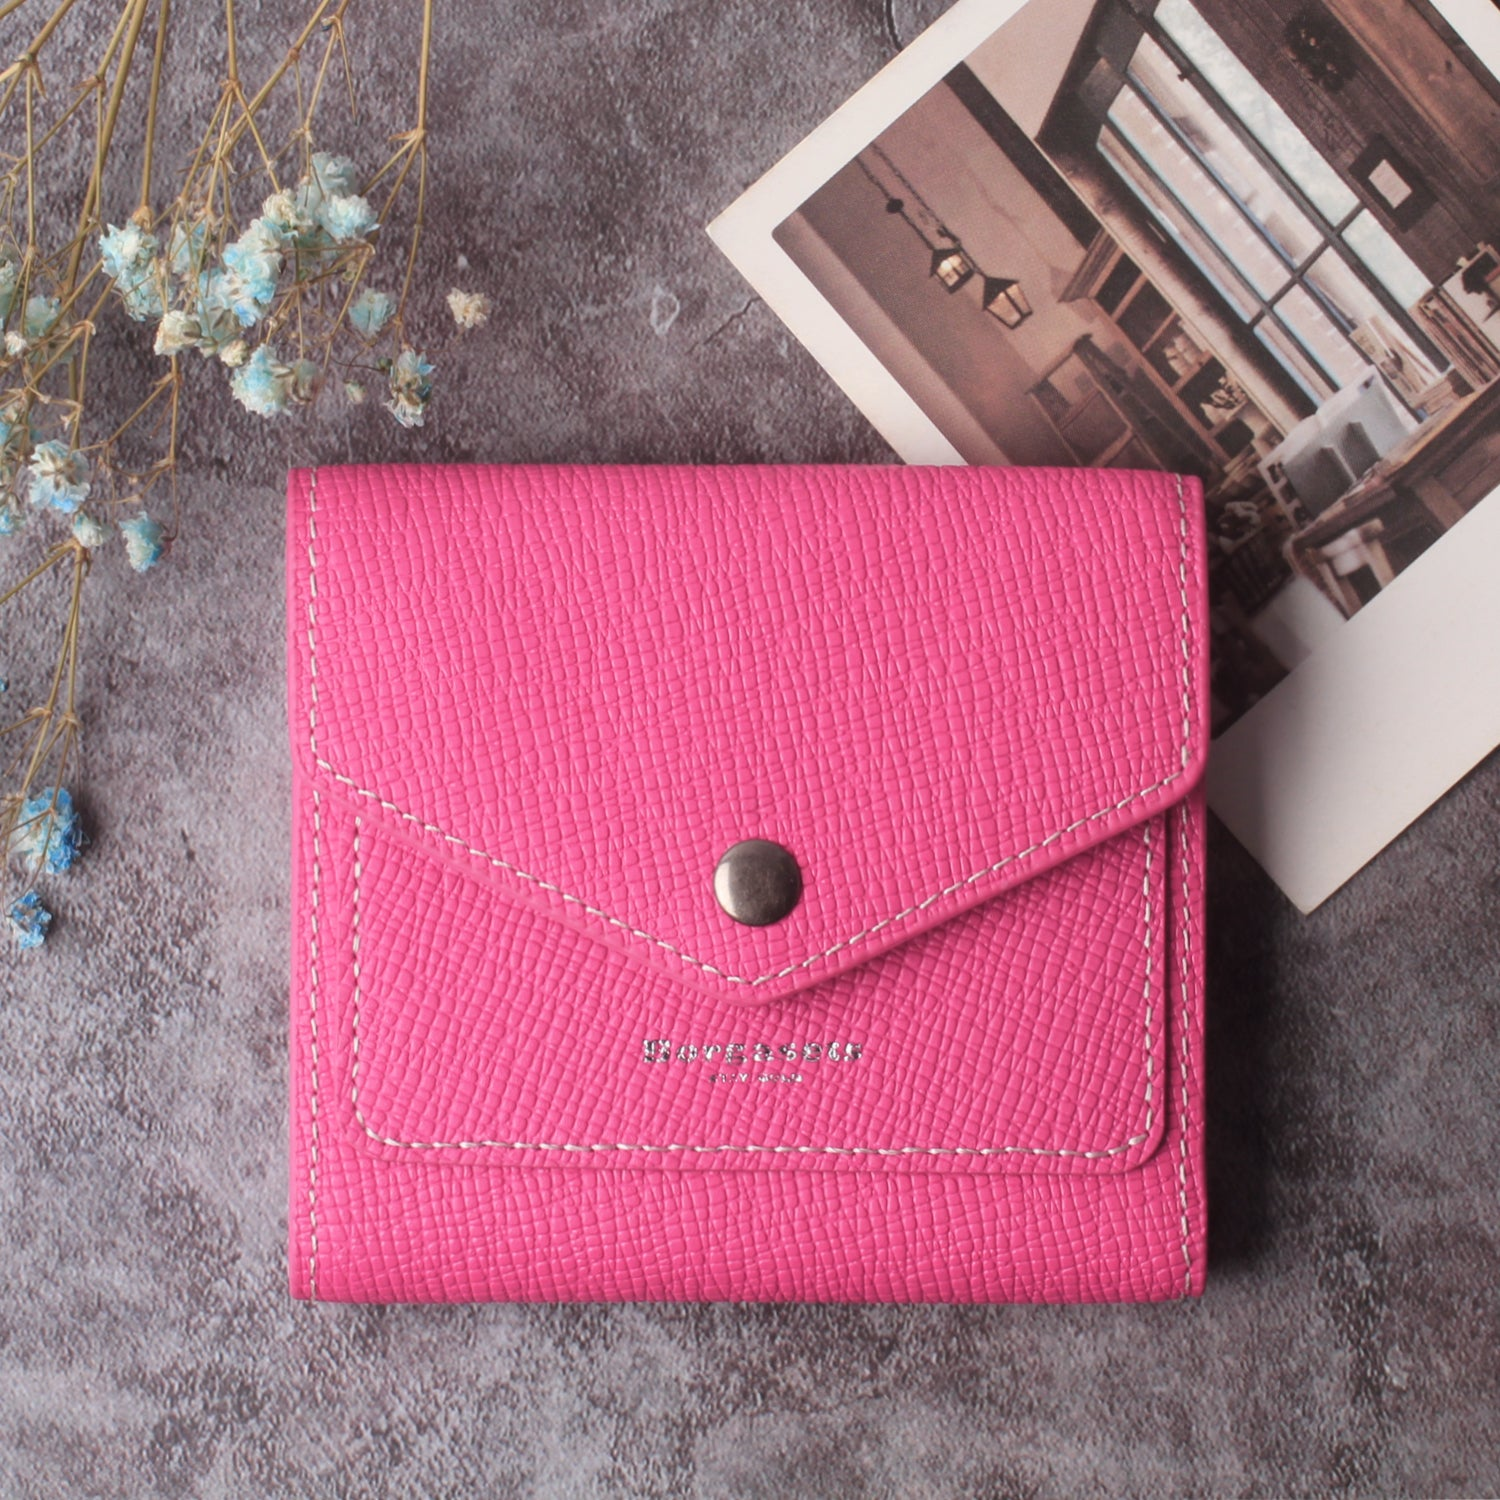 Small Leather Wallet for Women, RFID Blocking Women's Credit Card Holder Mini Bifold Pocket Purse BG1023 Crosshatch Pink - Borgasets